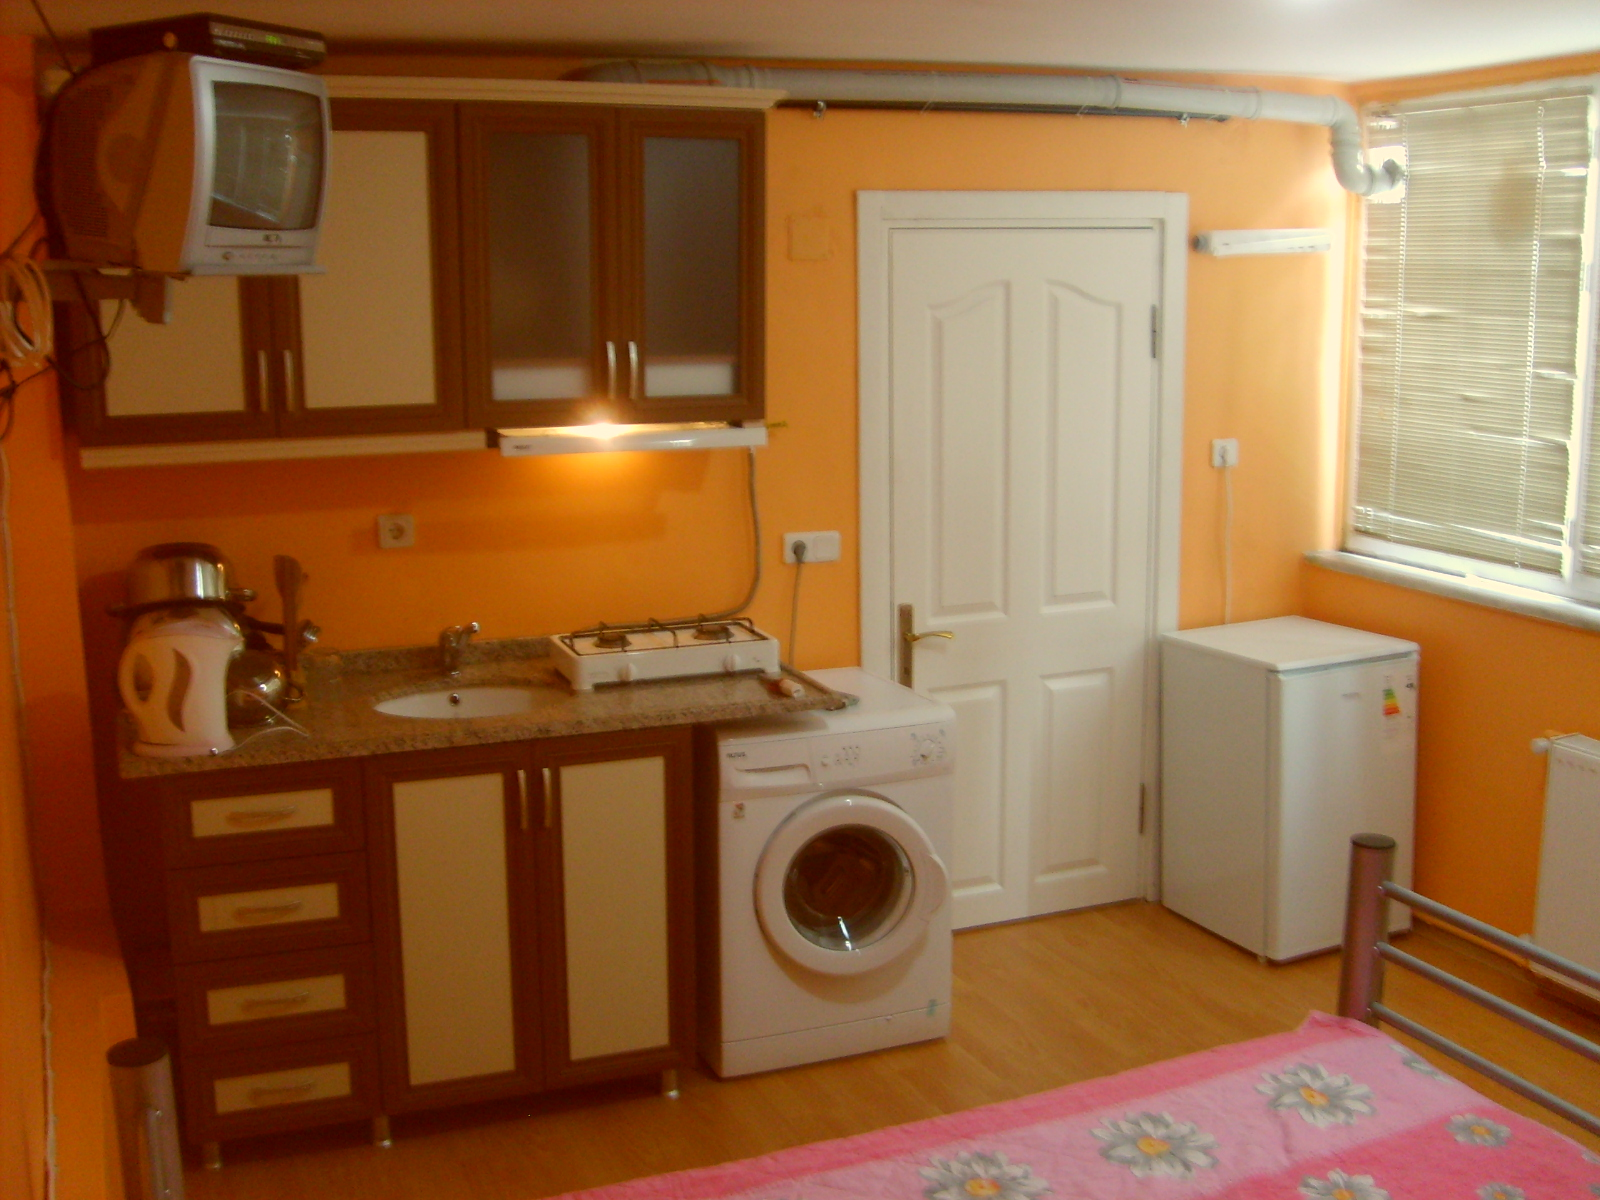 Istanbul apartment rentals erasmus apartments erasmus for 1 room kitchen interior design